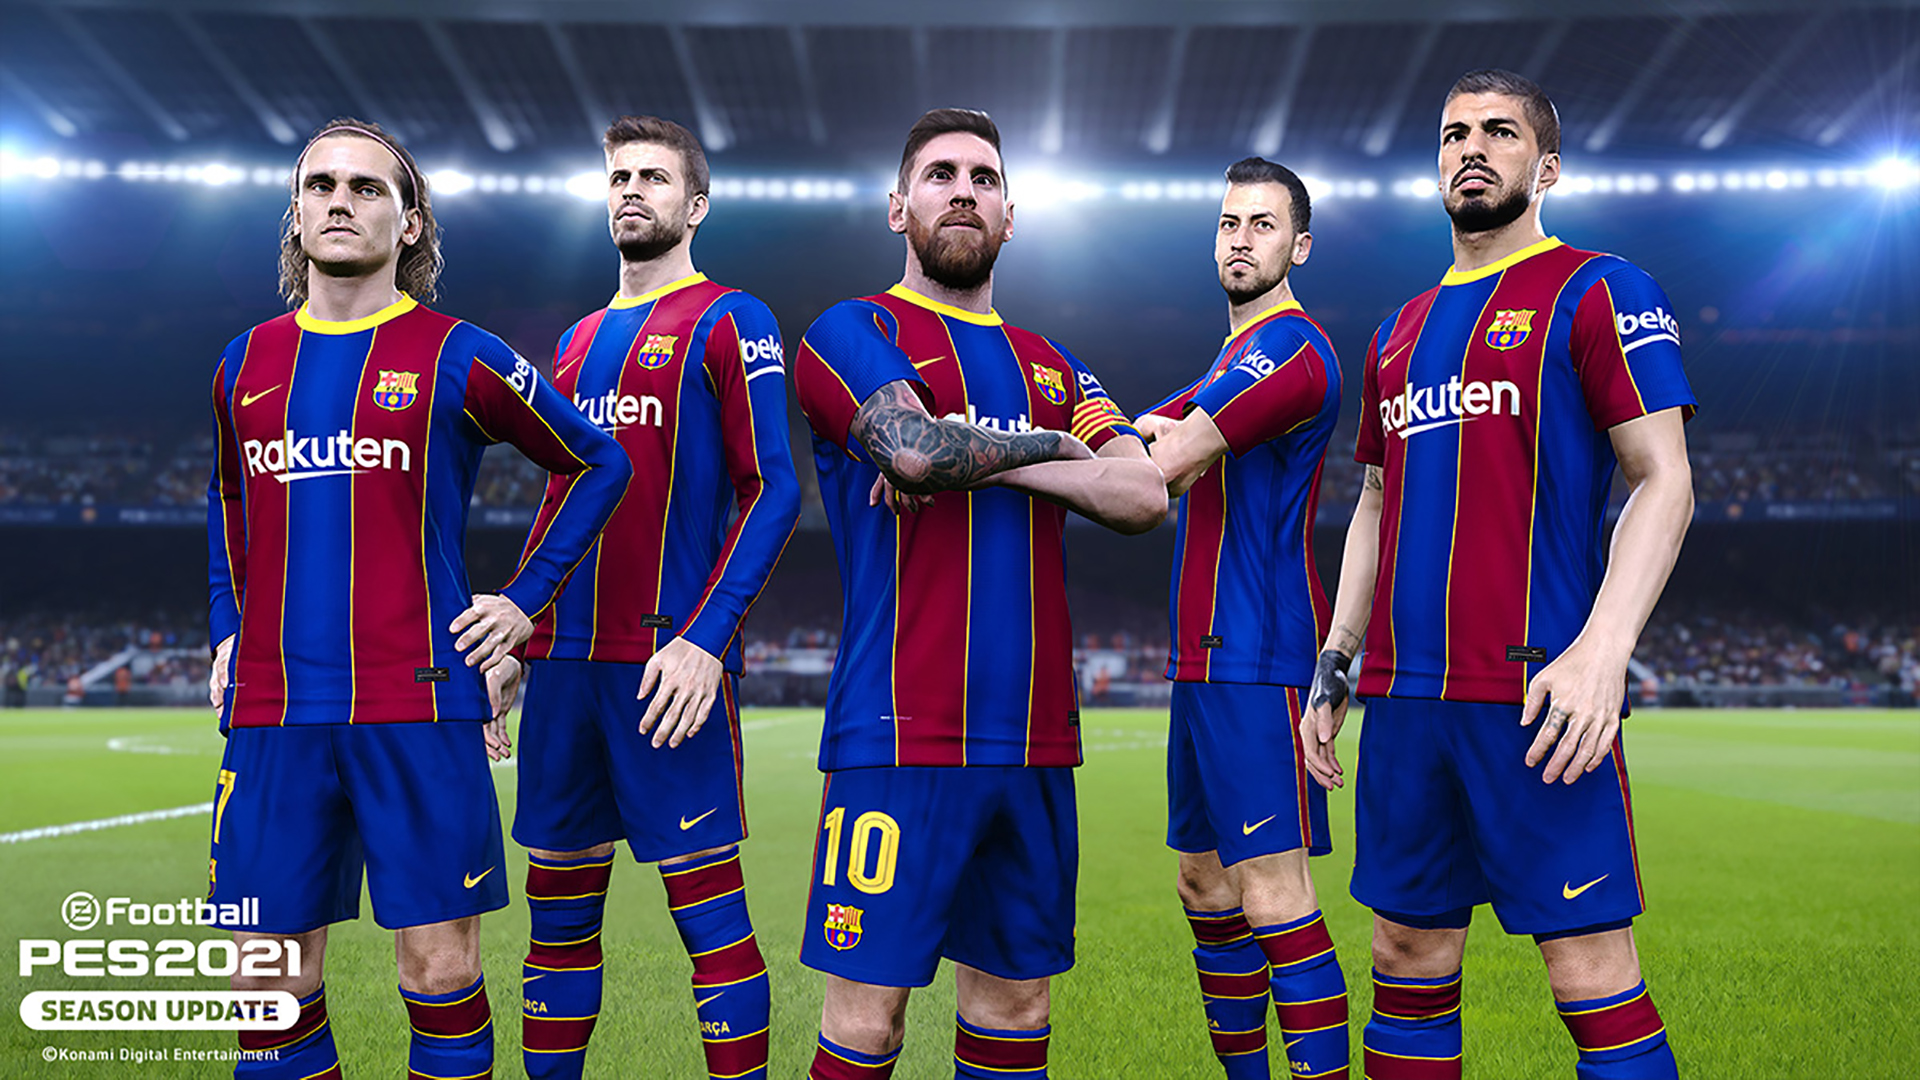 Fifa 21 Vs Pes 2021 Which Game Will Be Better Goal Com